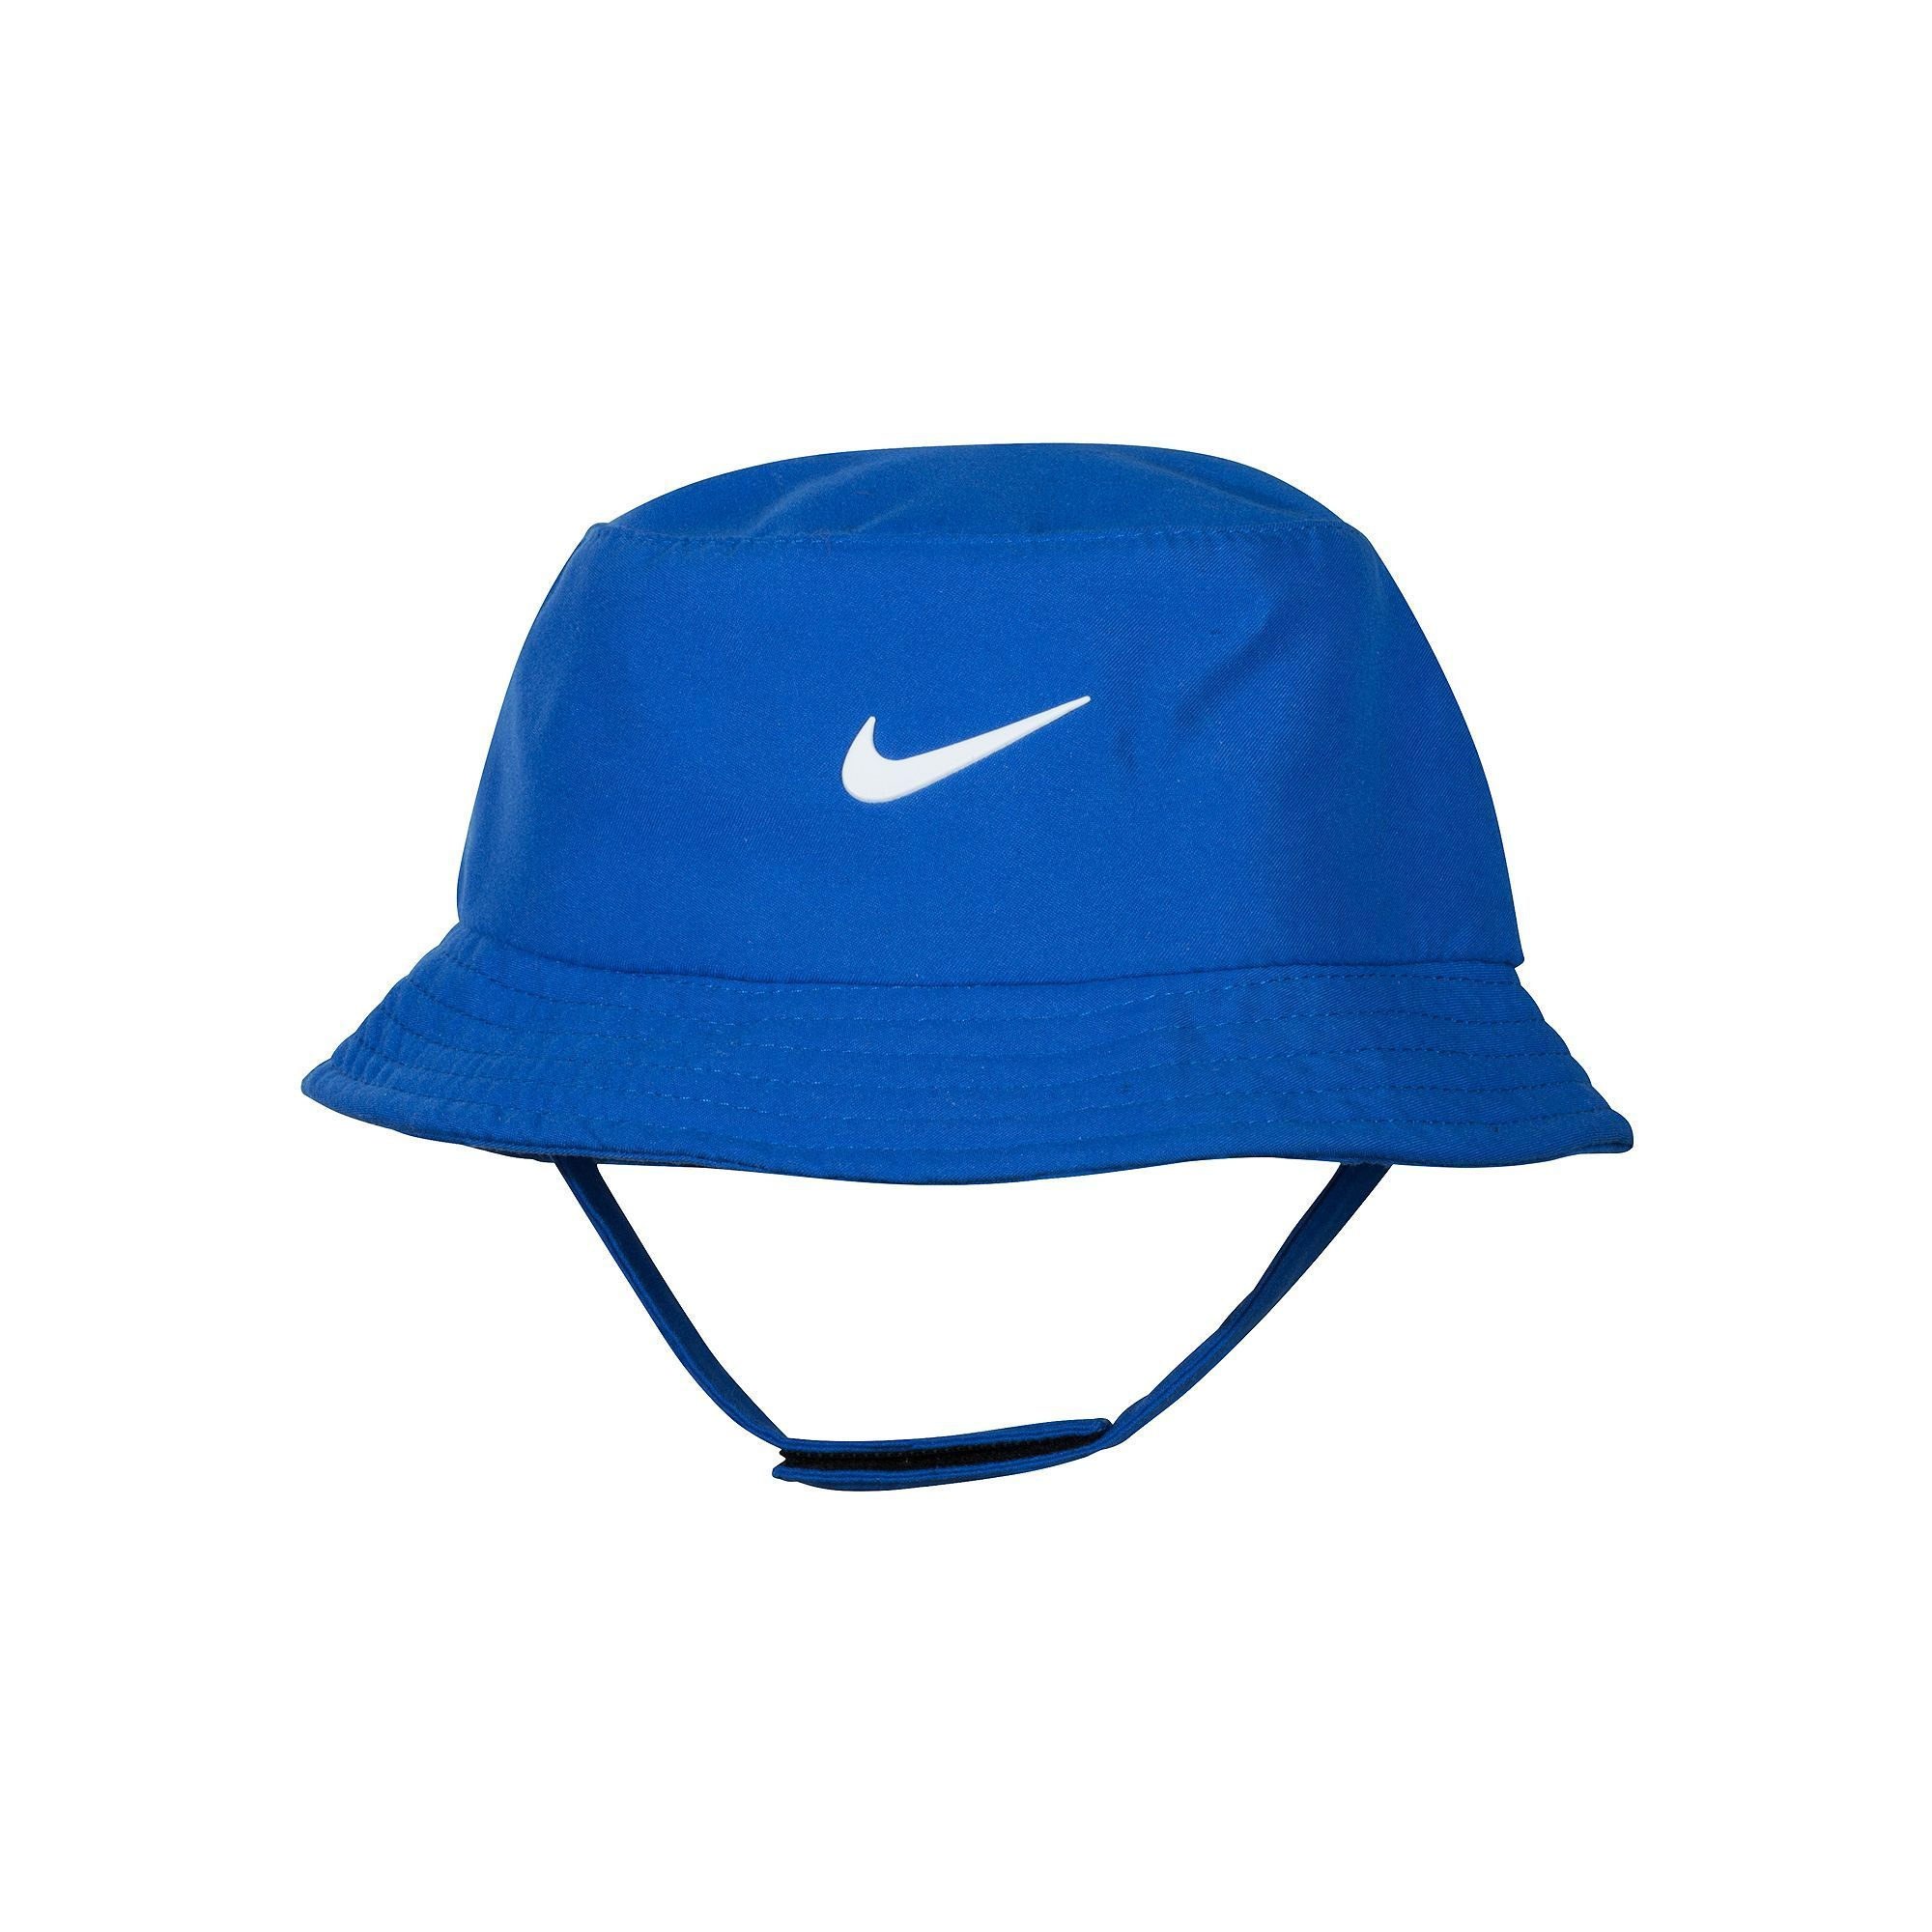 detailing catch new specials Baby Boy Nike Dri-FIT Bucket Hat | Baby boy nike, Toddler ...